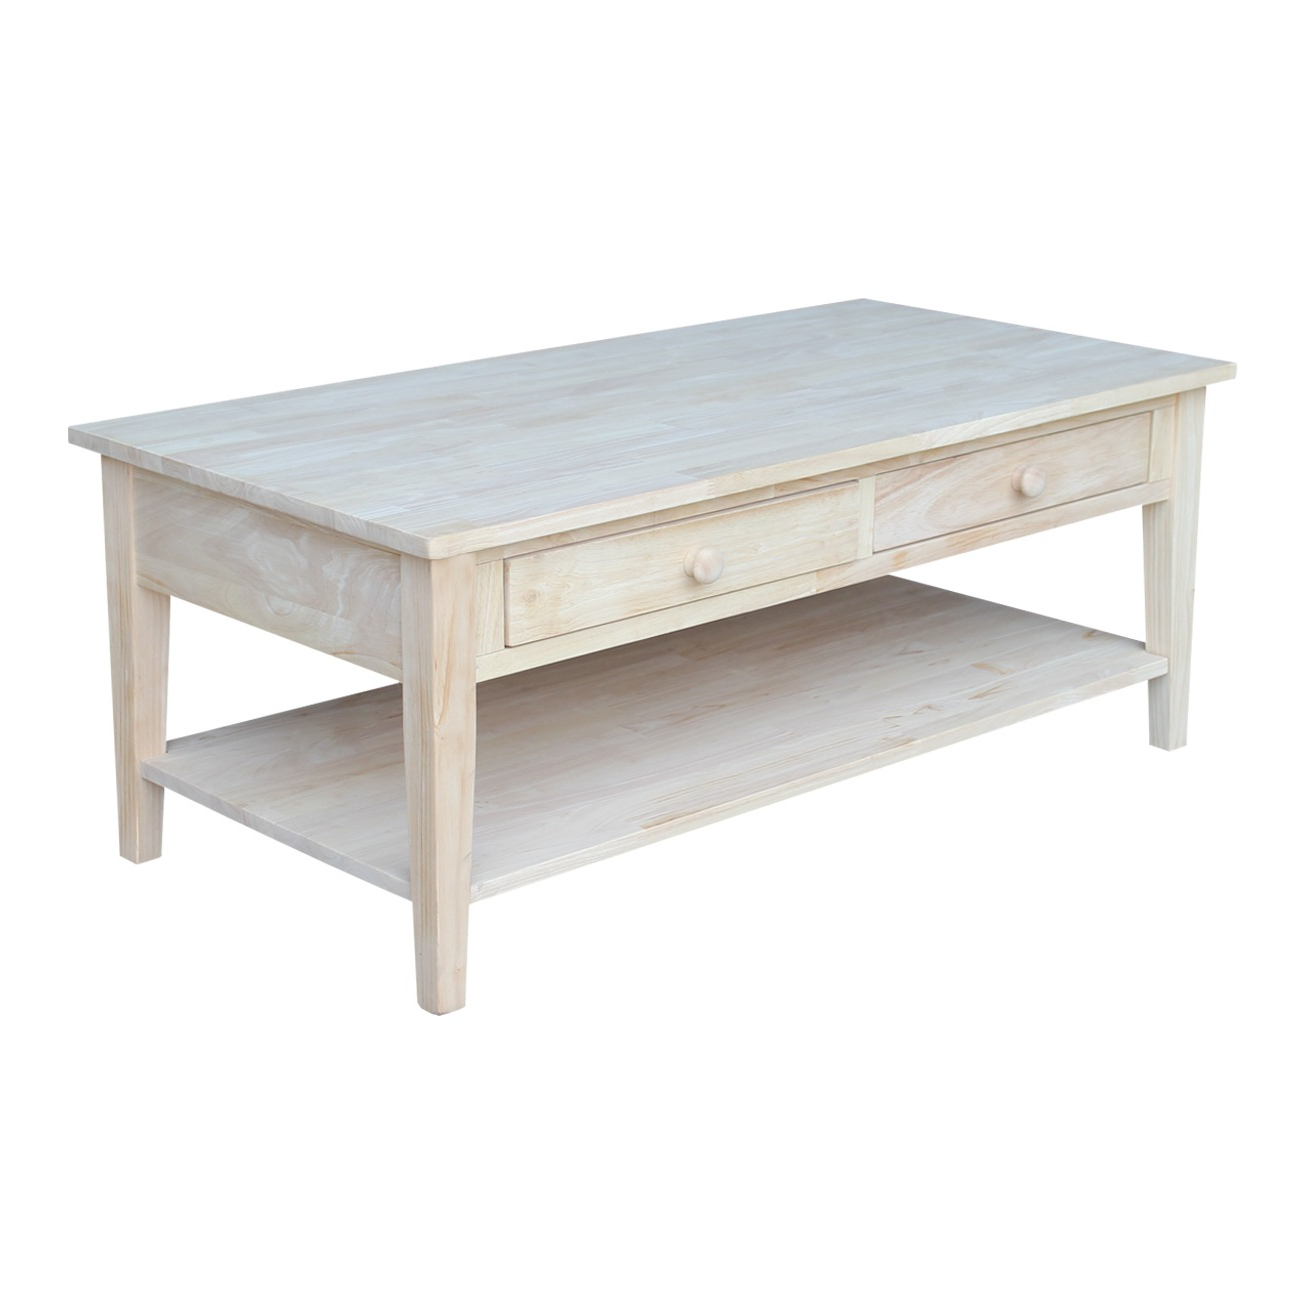 Ot 8c Spencer Coffee Table With Drawers In Newest Shaker Unfinished Solid Parawood Tall Coffee Tables (View 18 of 20)